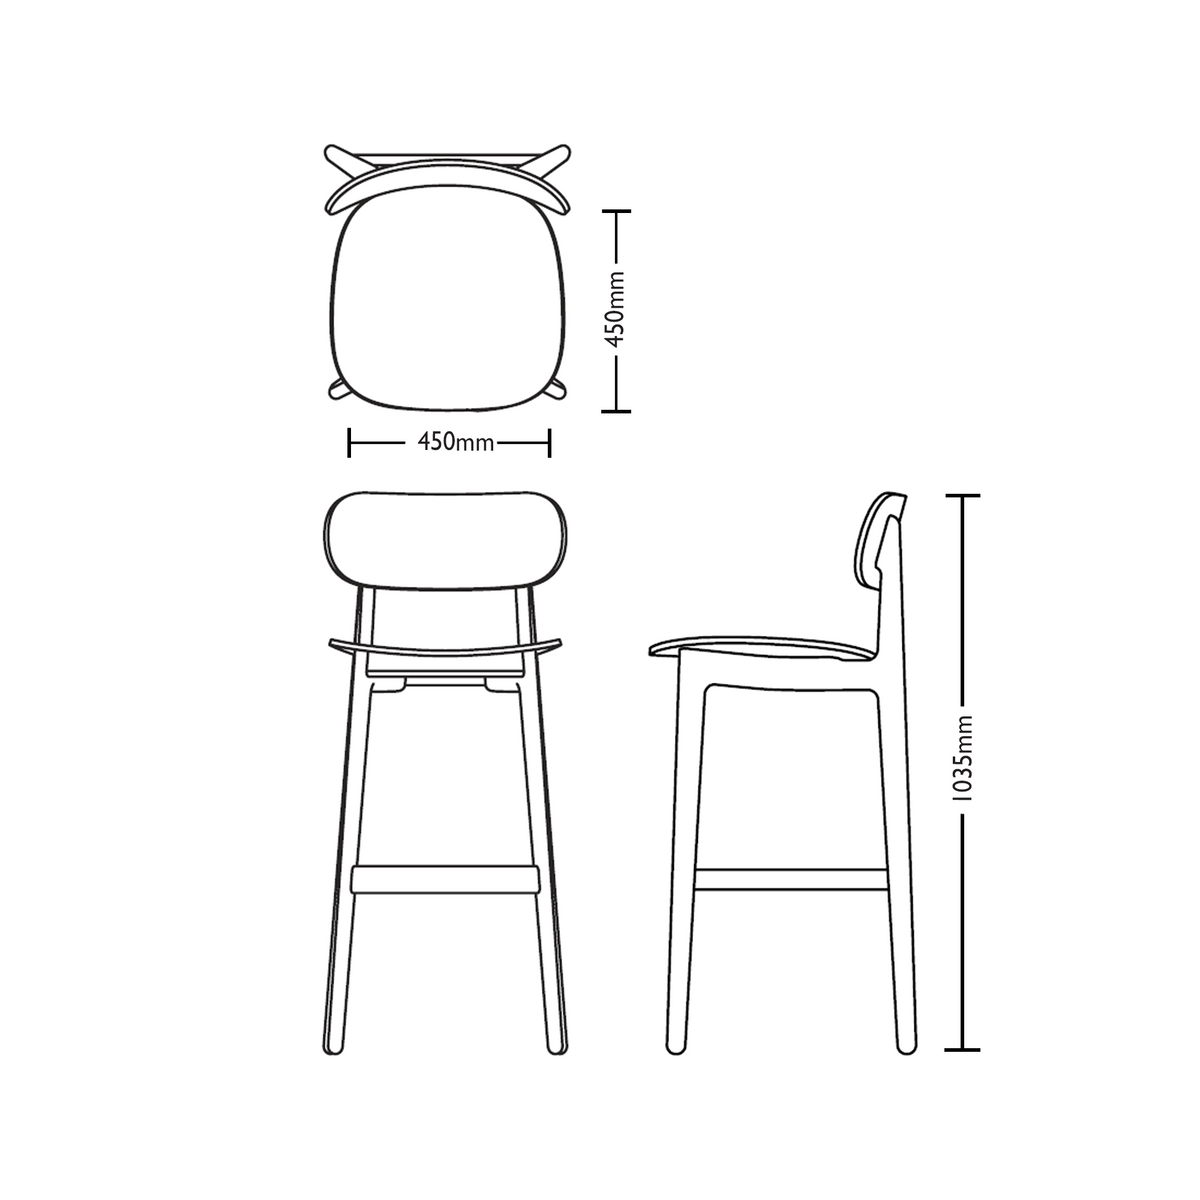 Dimensions for Modus Office PLC Bar Stool